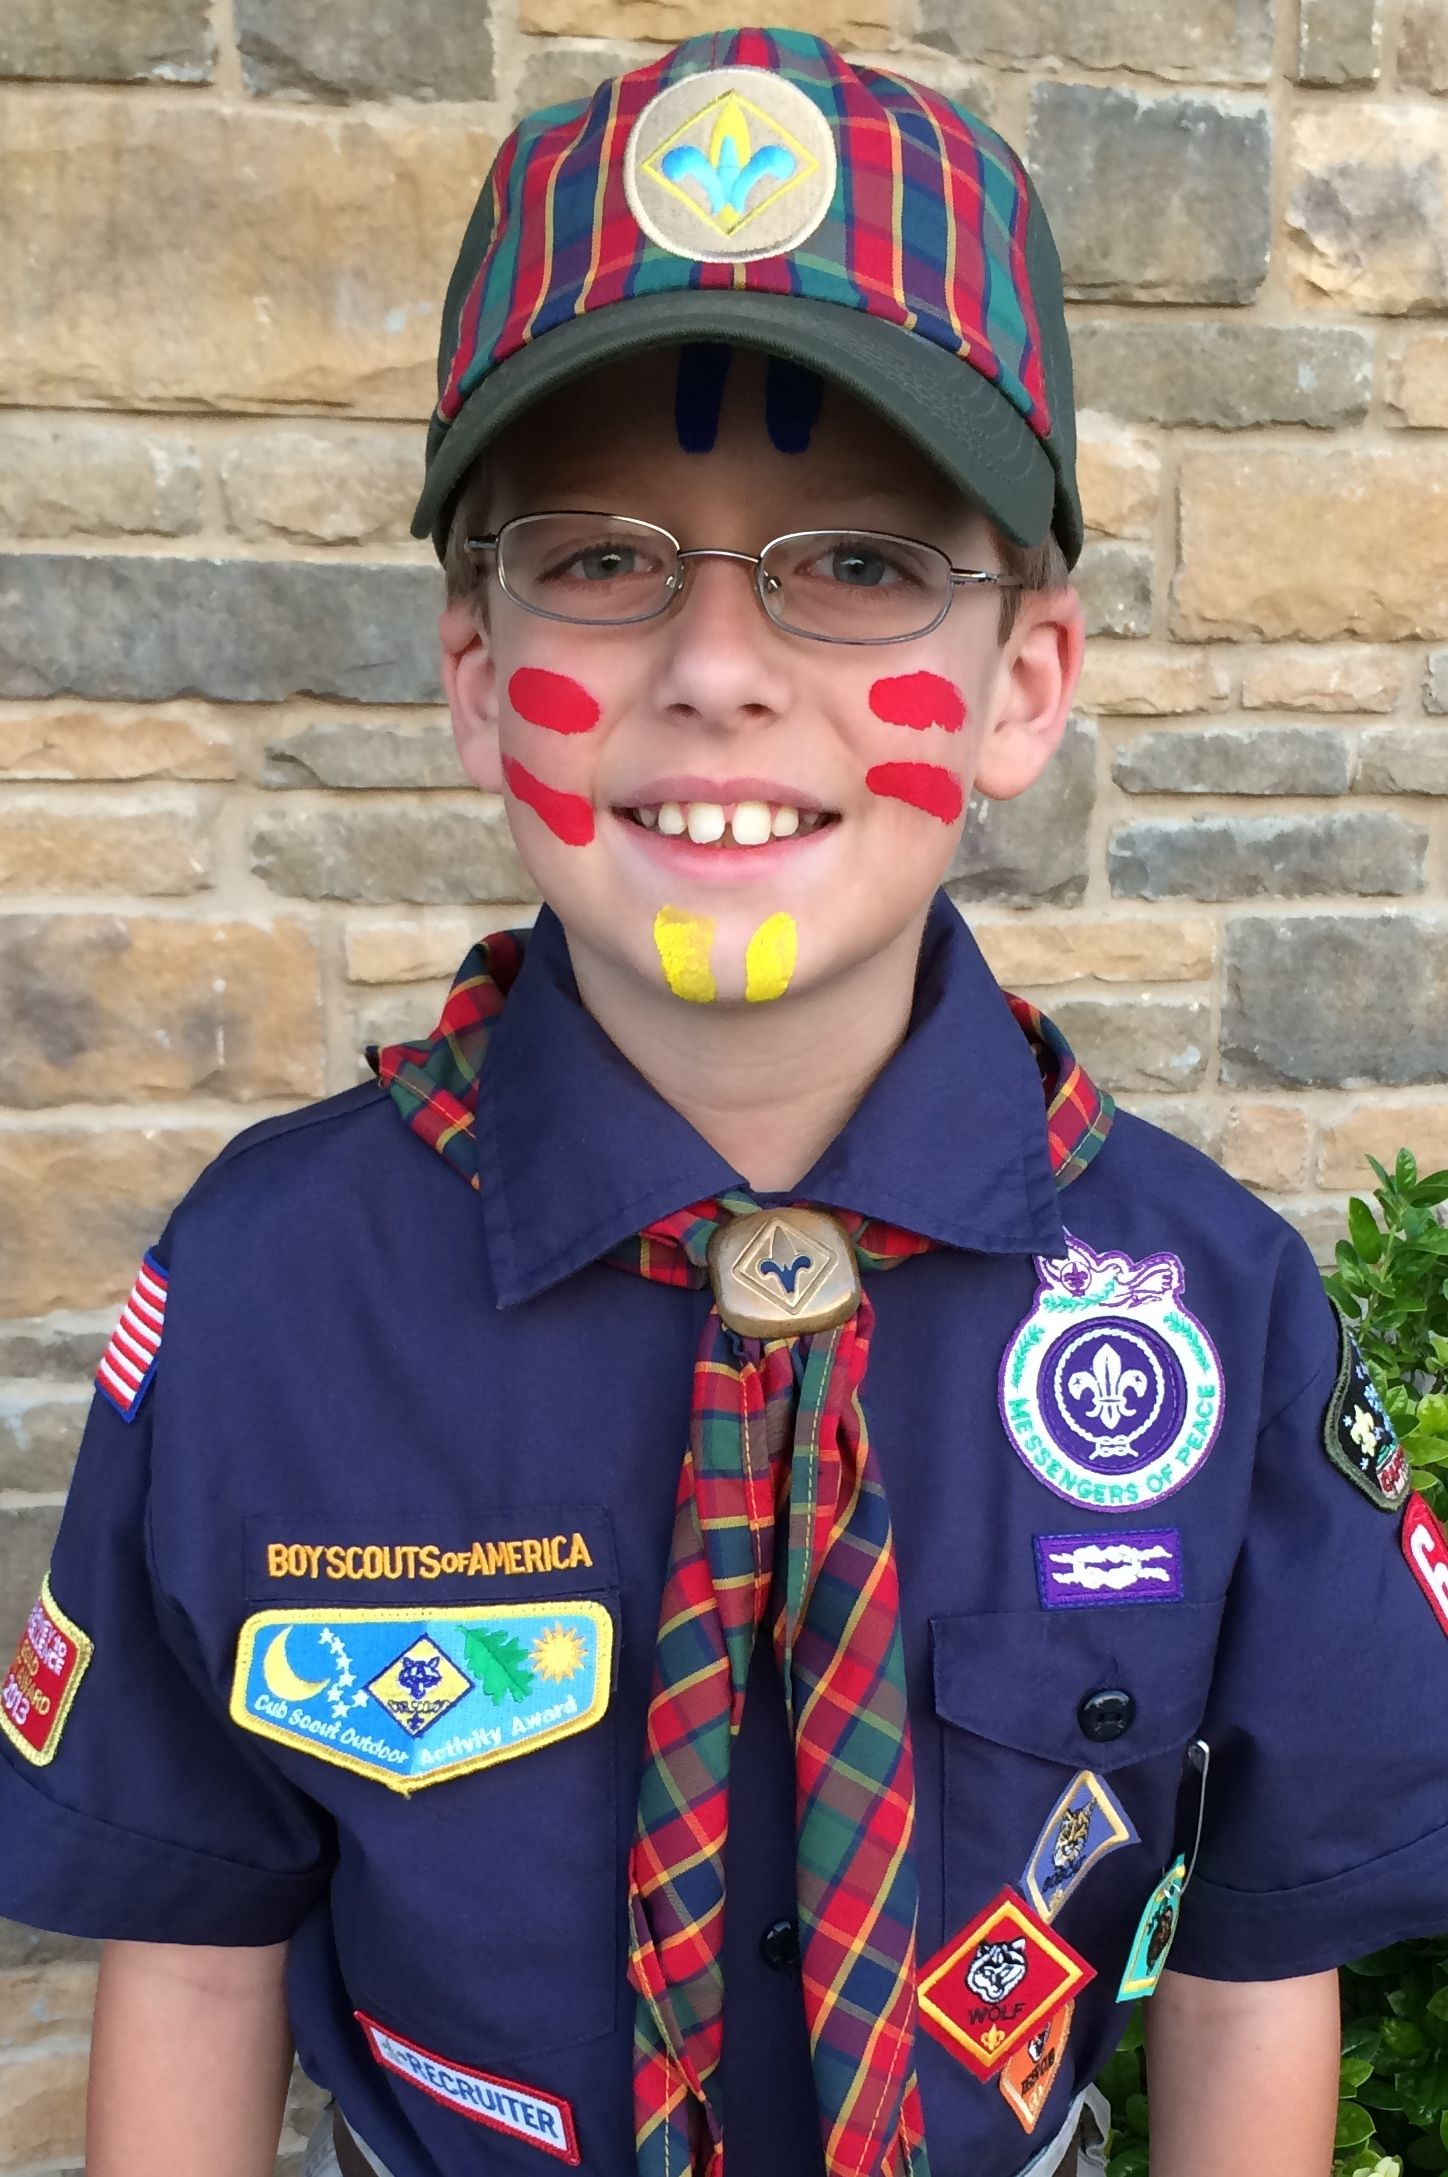 Cub Scouts Crossover Painting Face